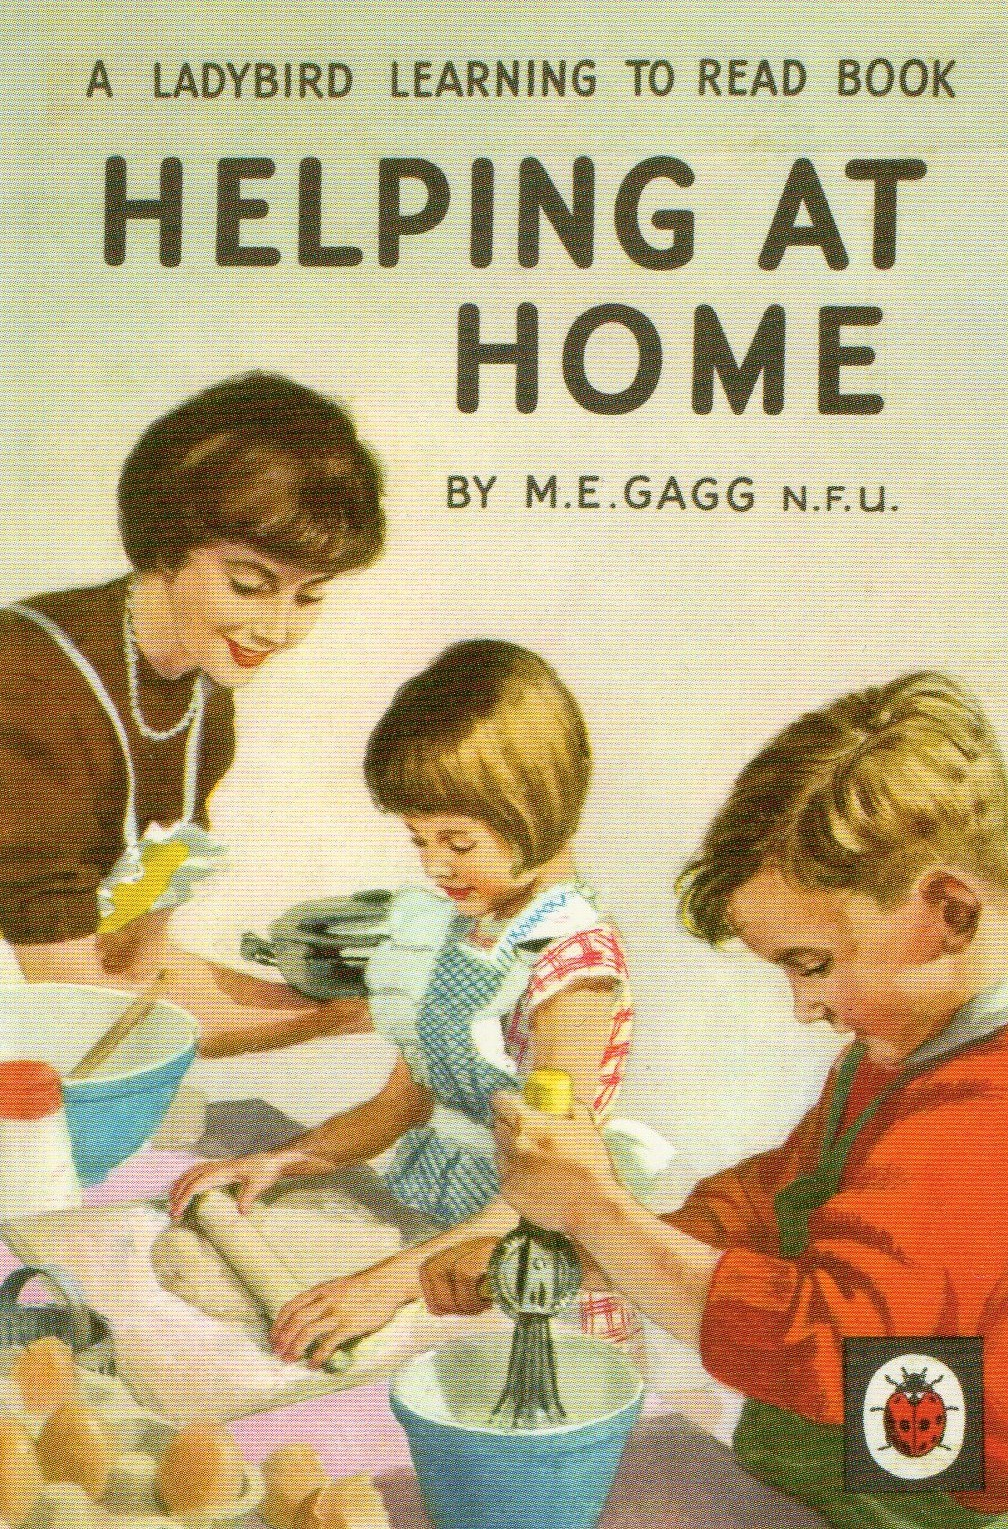 Ladybird Book Cover Pictures : Design context ladybird book covers